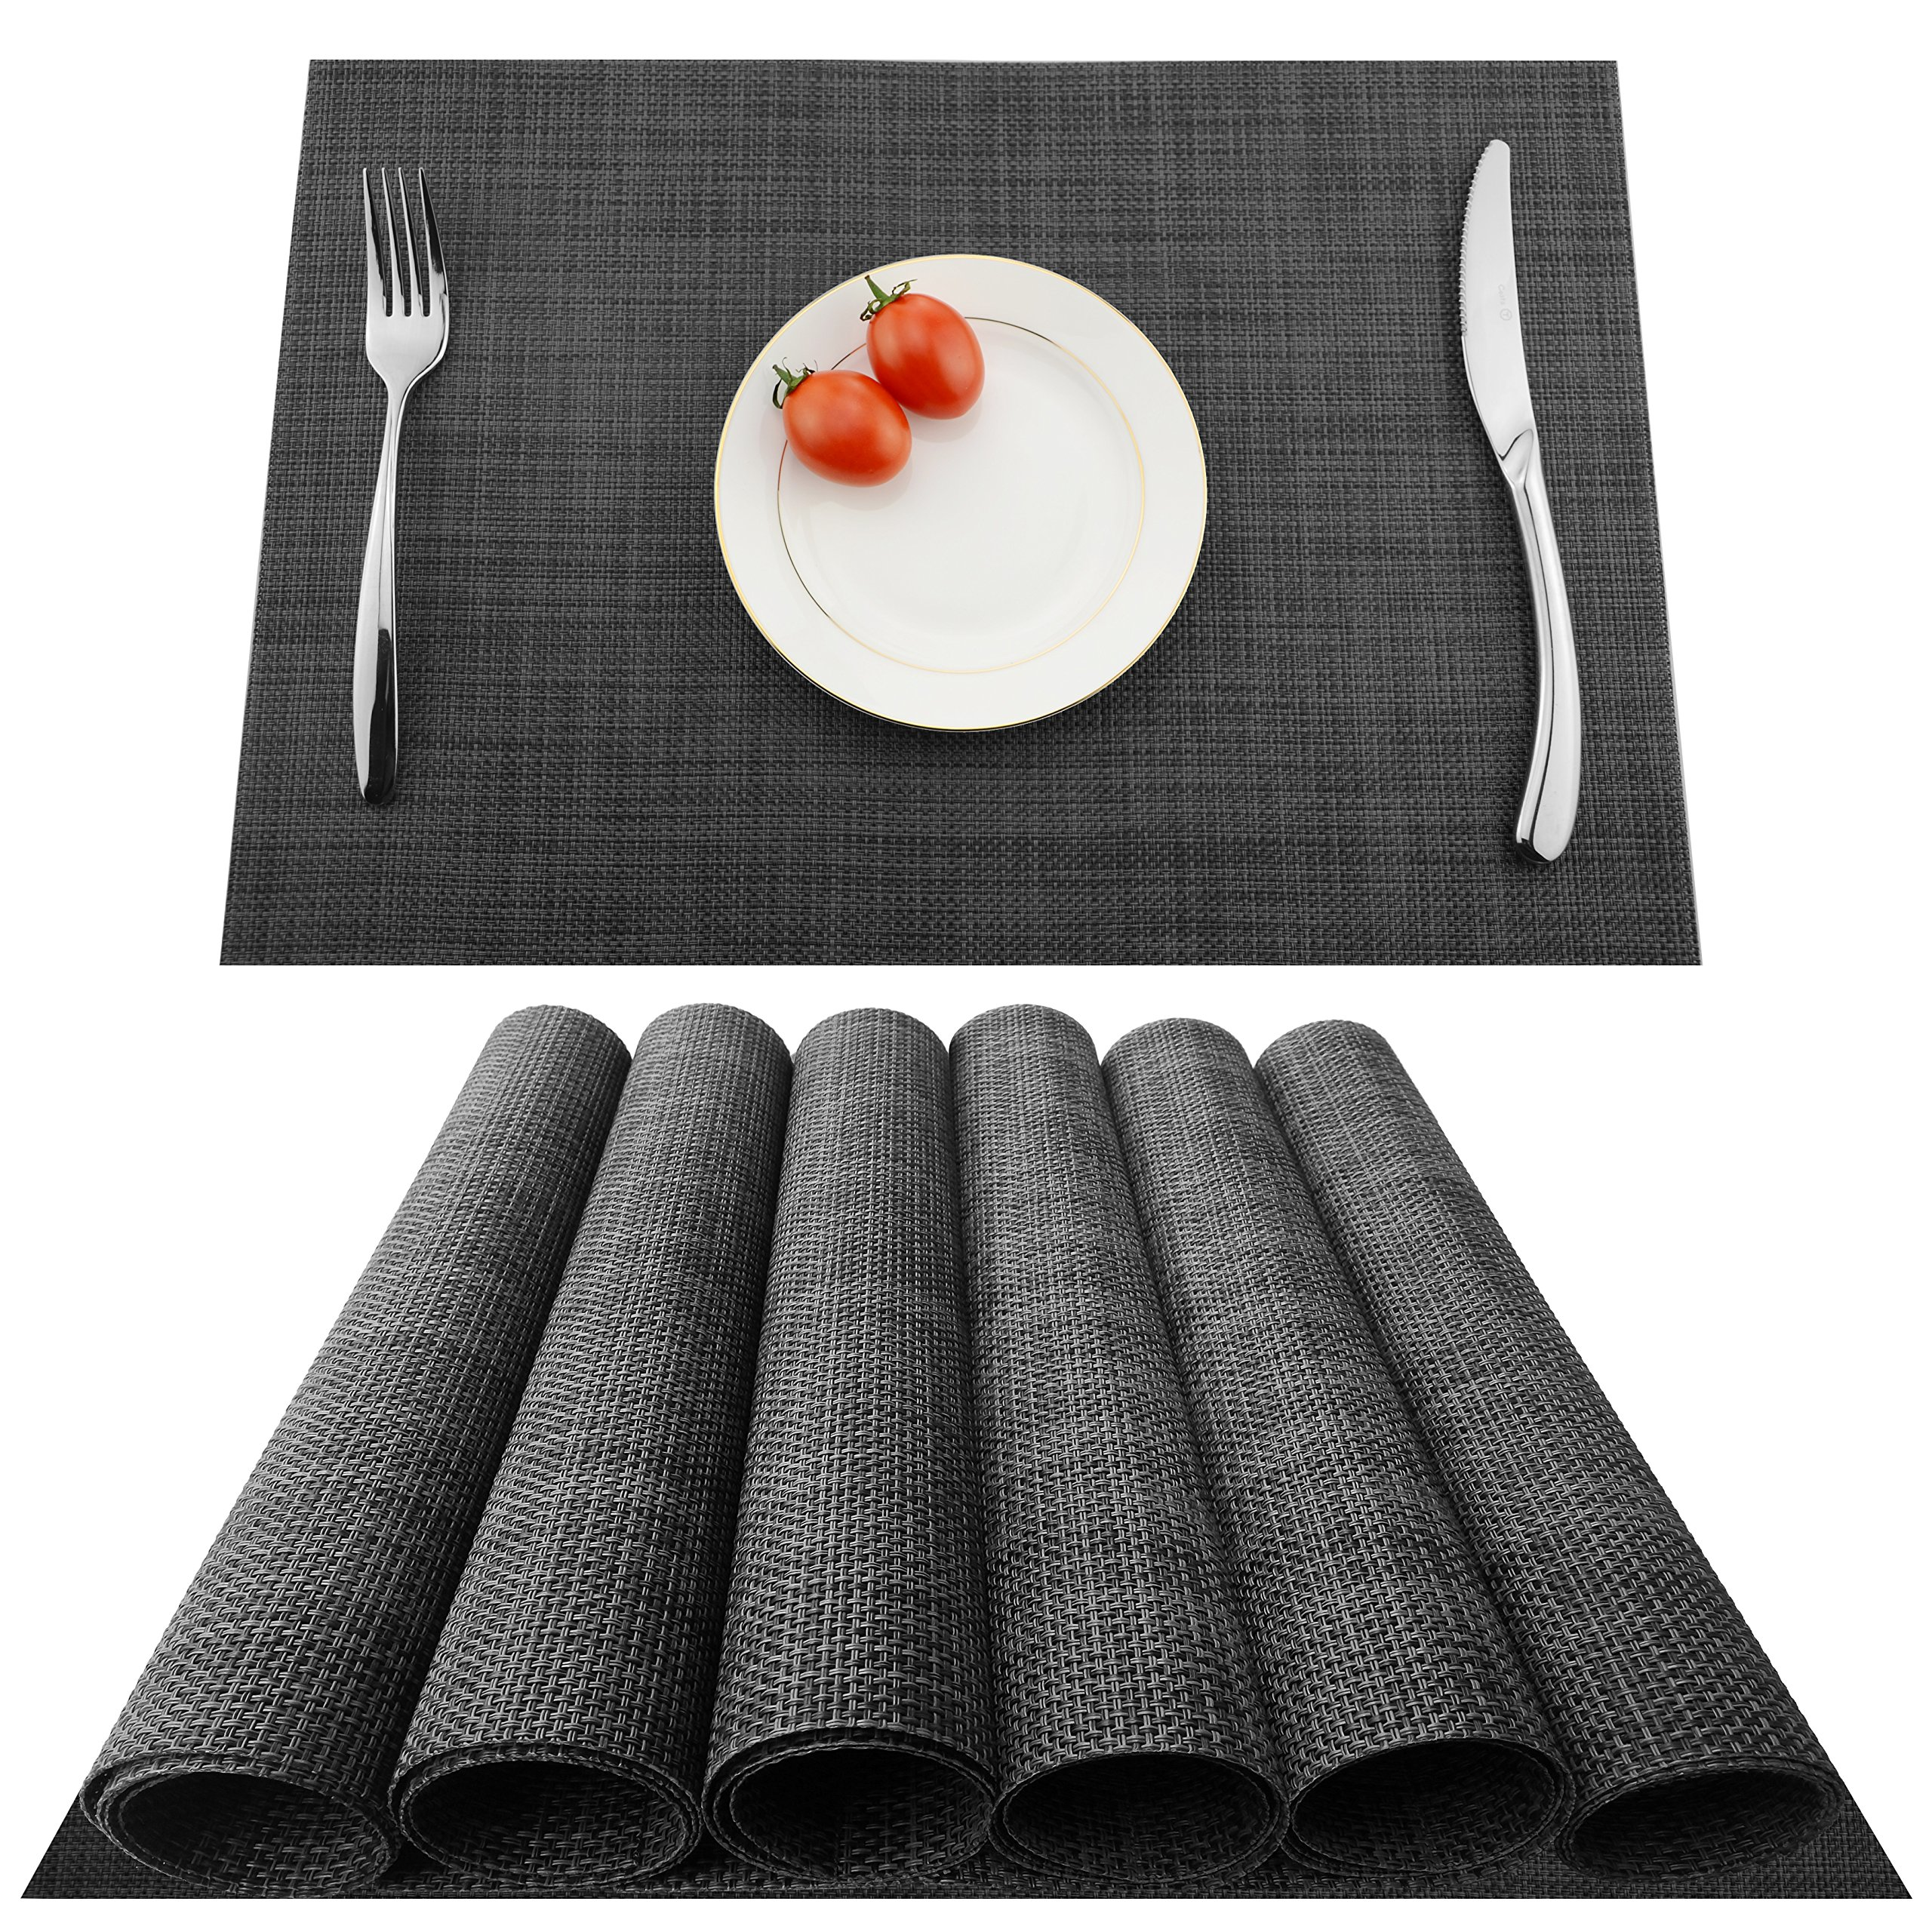 KOKAKO Placemats Heat-Resistant Anti-skid Washable Dining Table Place Mats PVC Kitchen Table Mats By, Set of 6(Dark Gray)